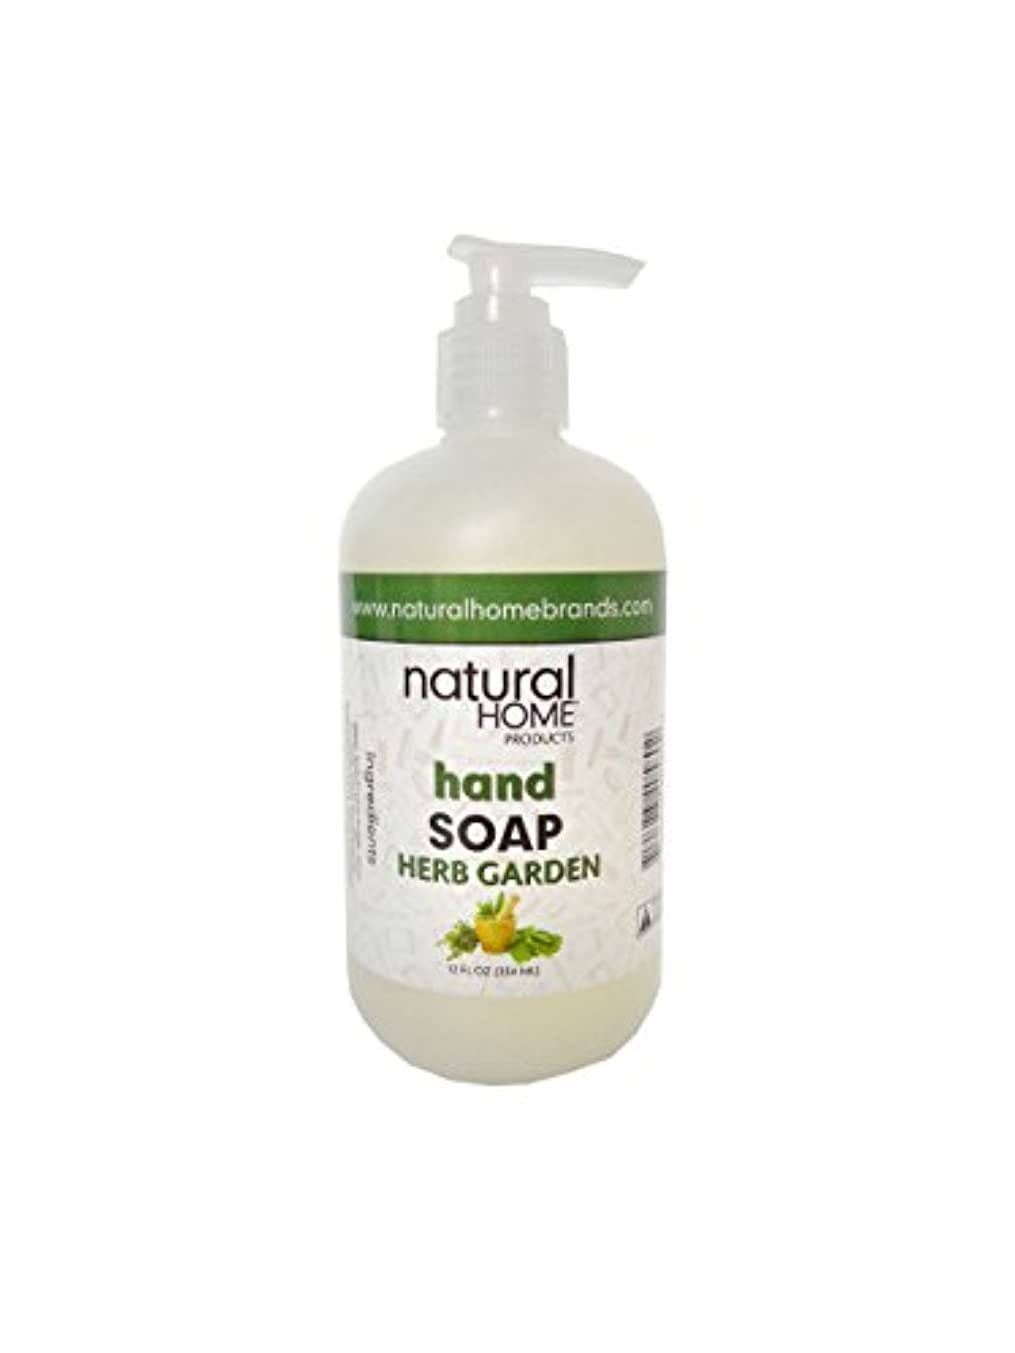 シャーク打倒複雑なNatural Home Herb Garden Hand Soap, 350ml, Green